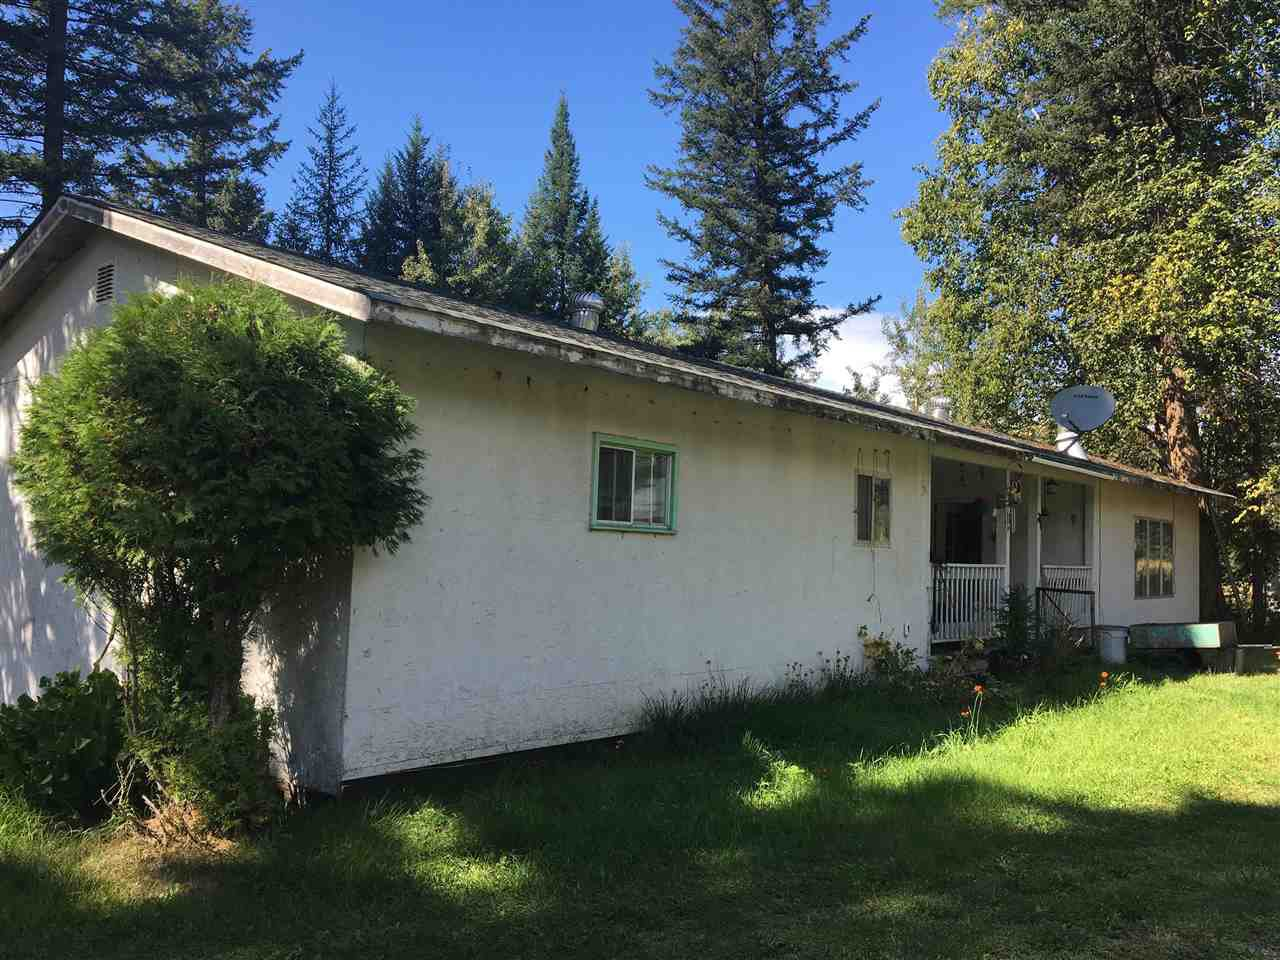 Photo 4: Photos: 4257 WHITECOTTON Road in Quesnel: Quesnel Rural - South Manufactured Home for sale (Quesnel (Zone 28))  : MLS®# R2479677